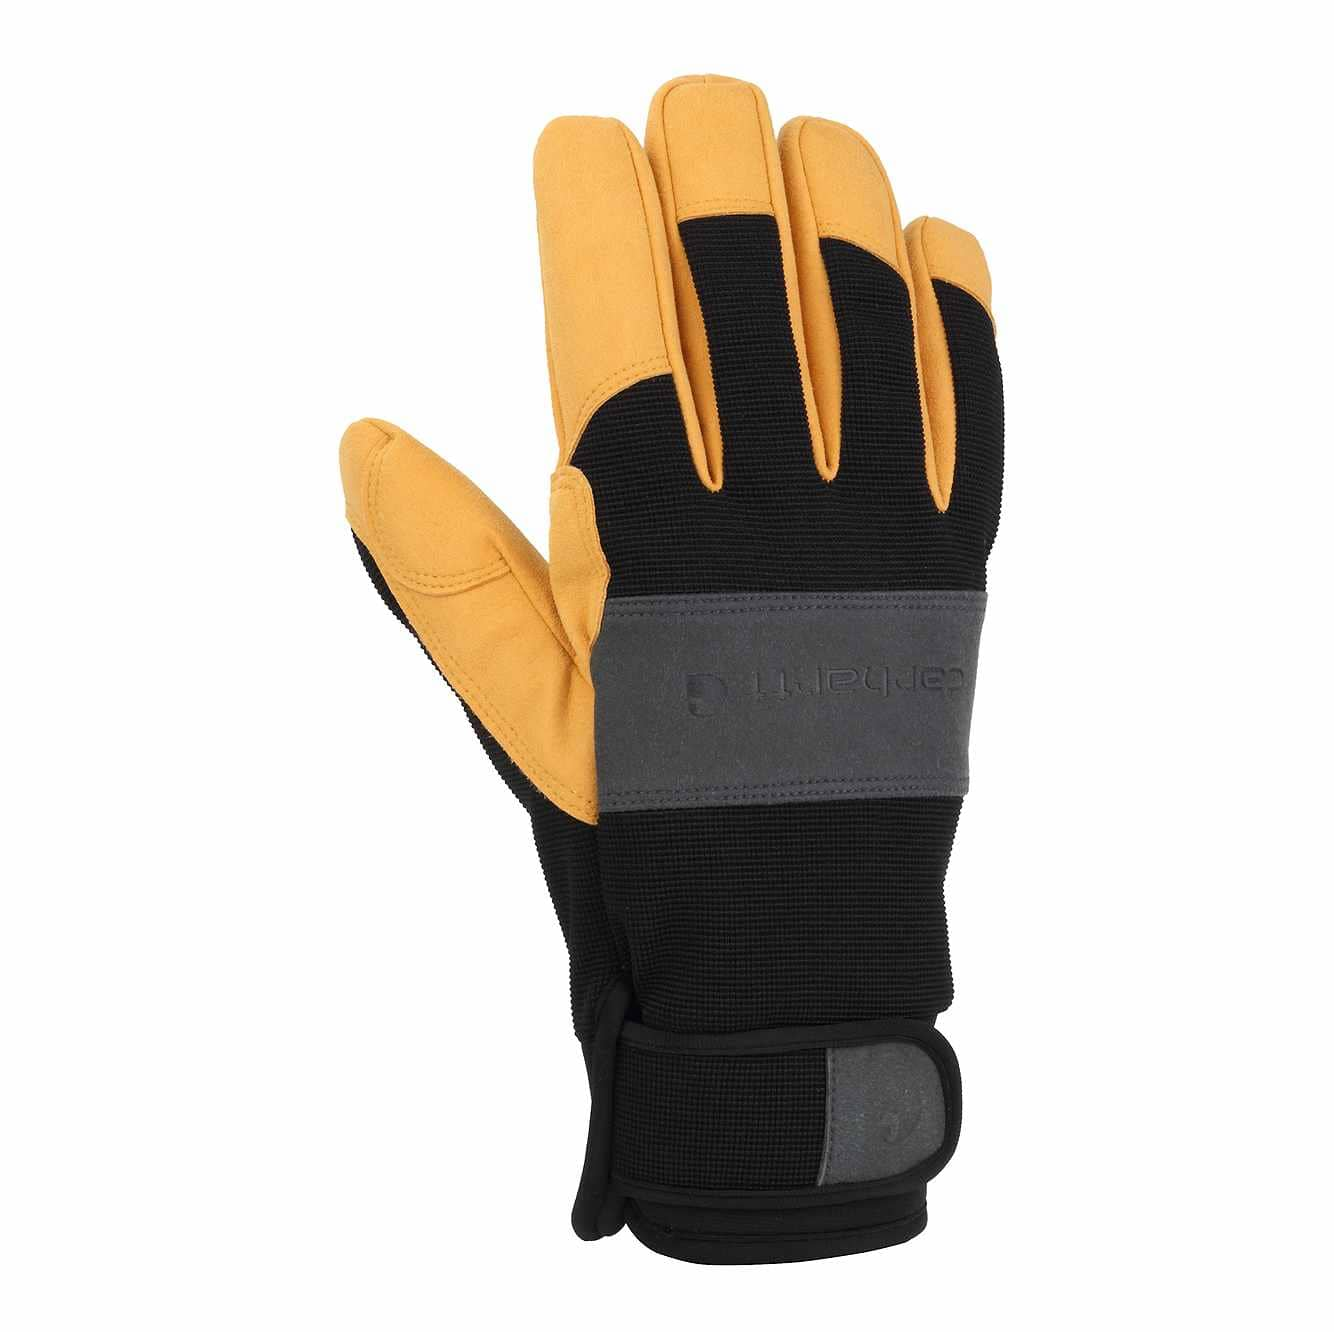 Picture of Waterproof Breathable High Dexterity Glove in Black Barley